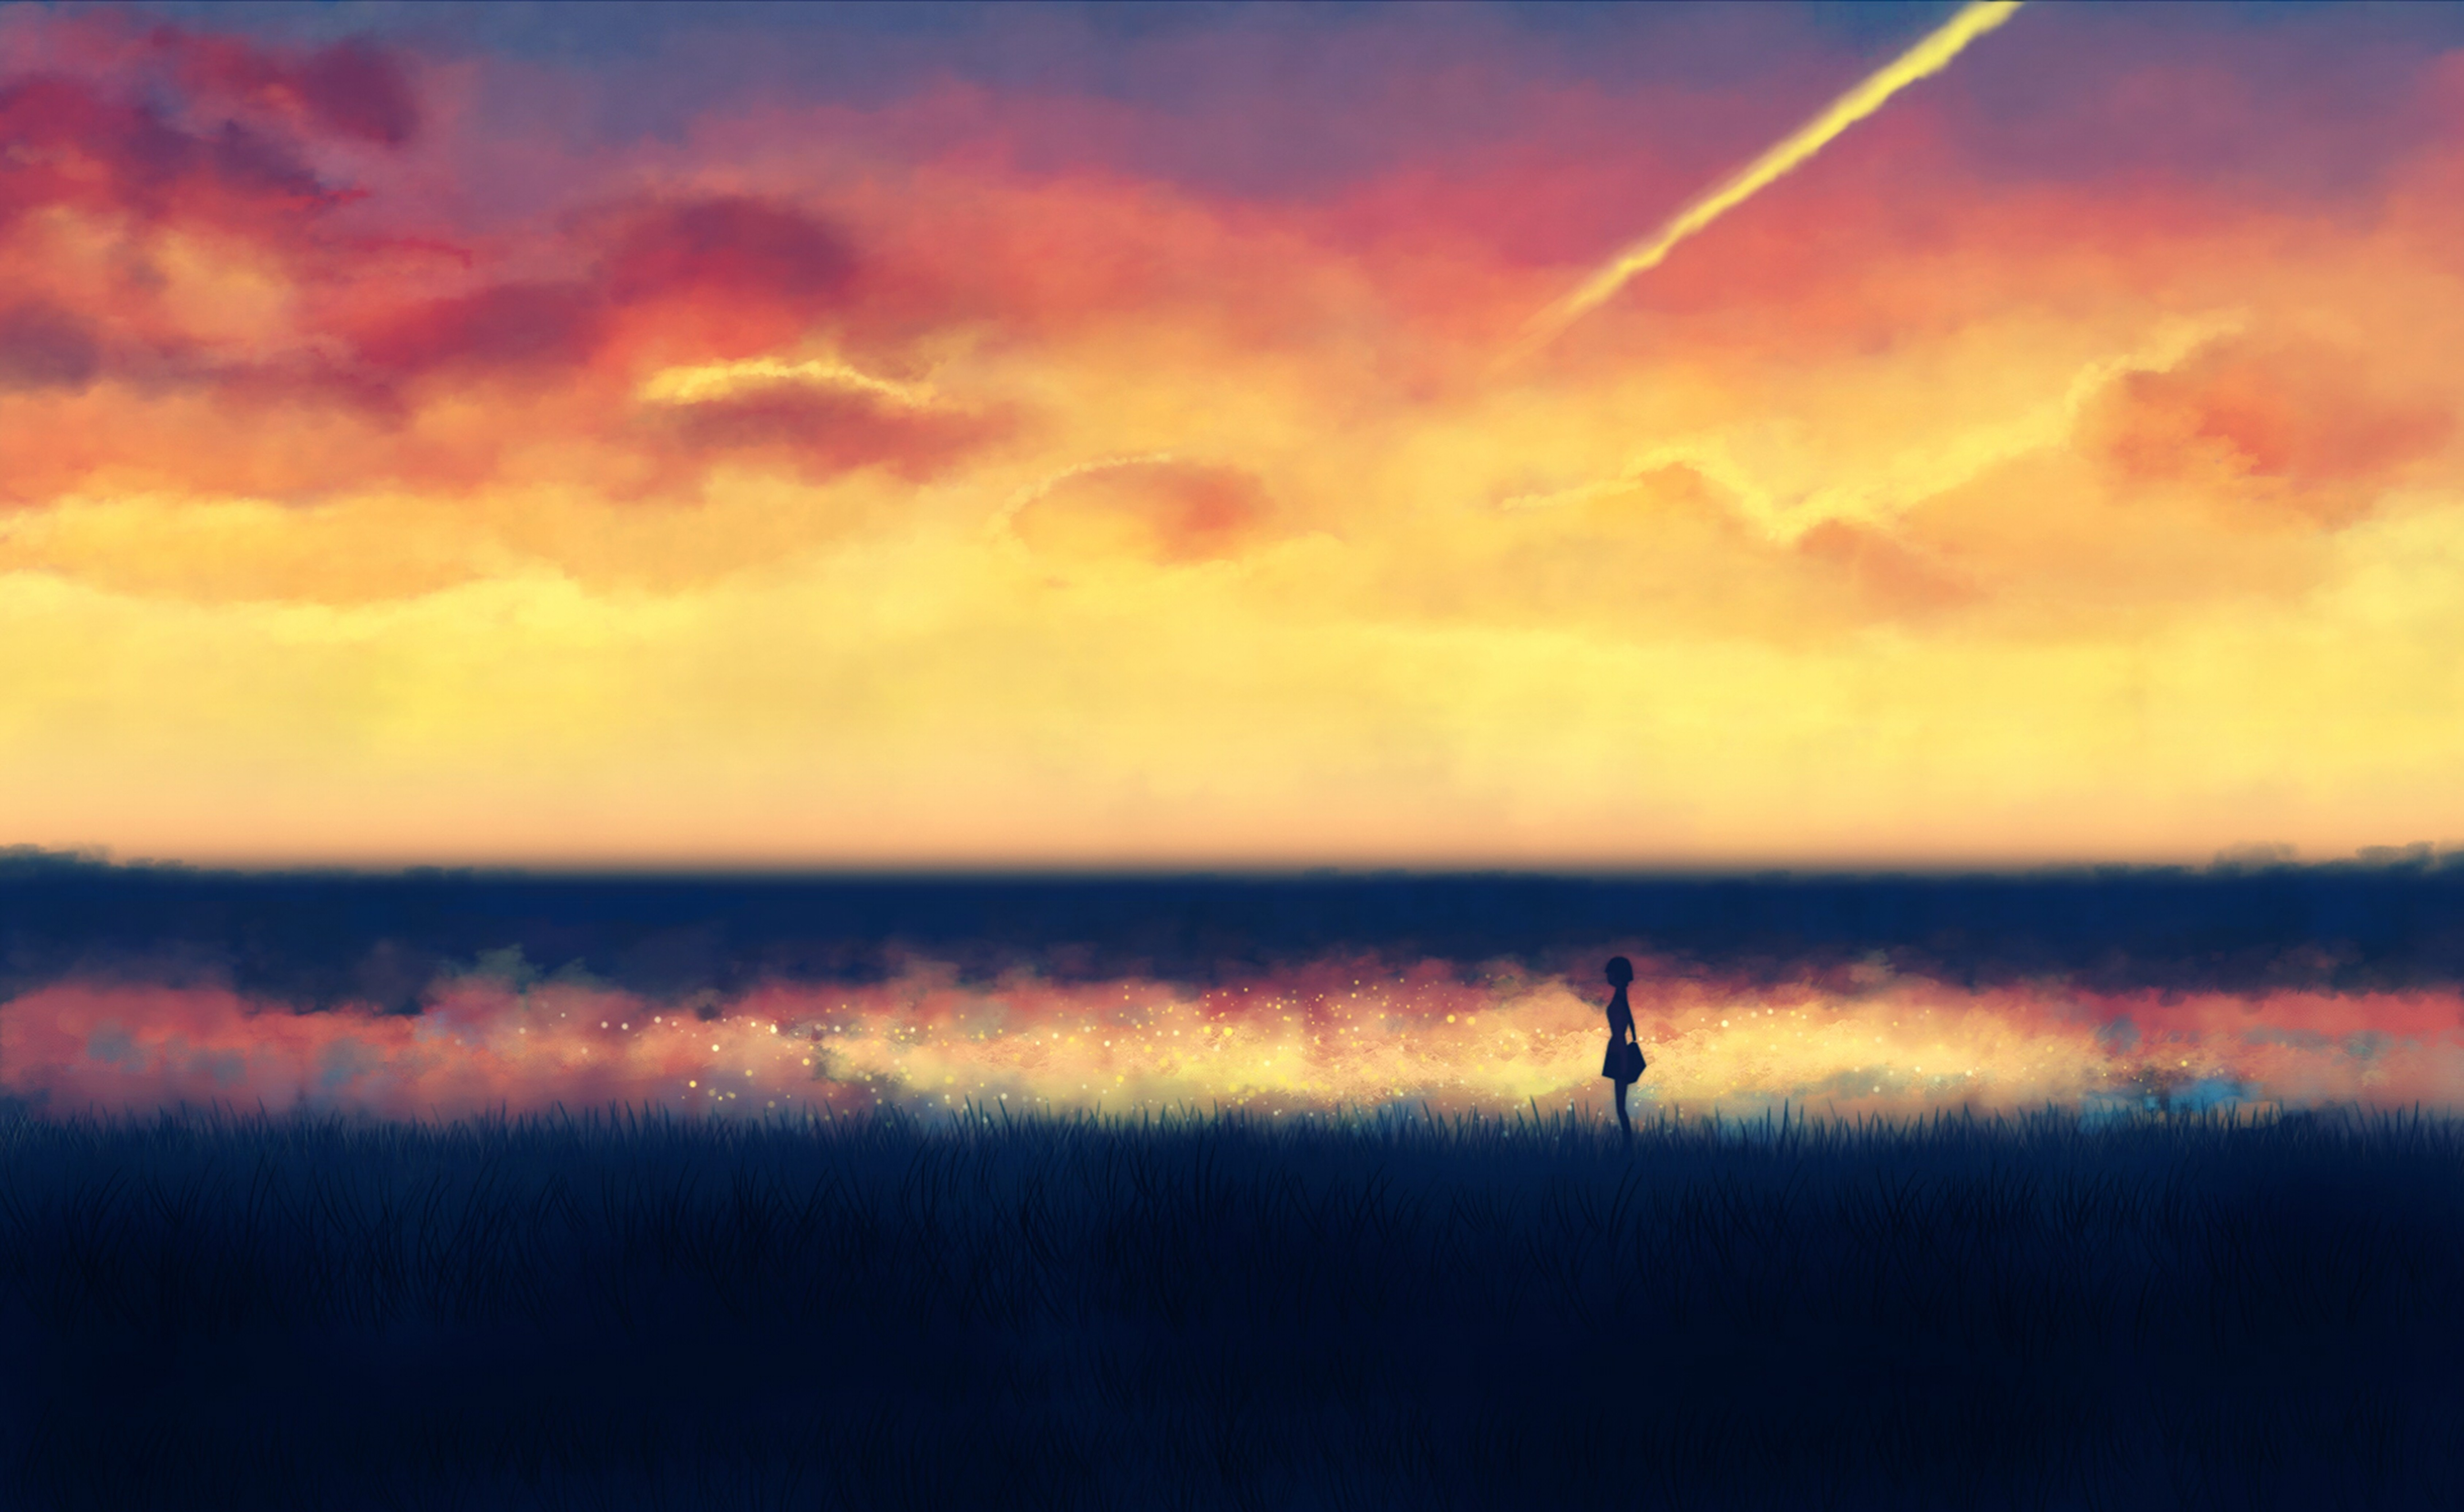 anime-girl-scenic-clouds-sky-lonely-anime-9485.jpg